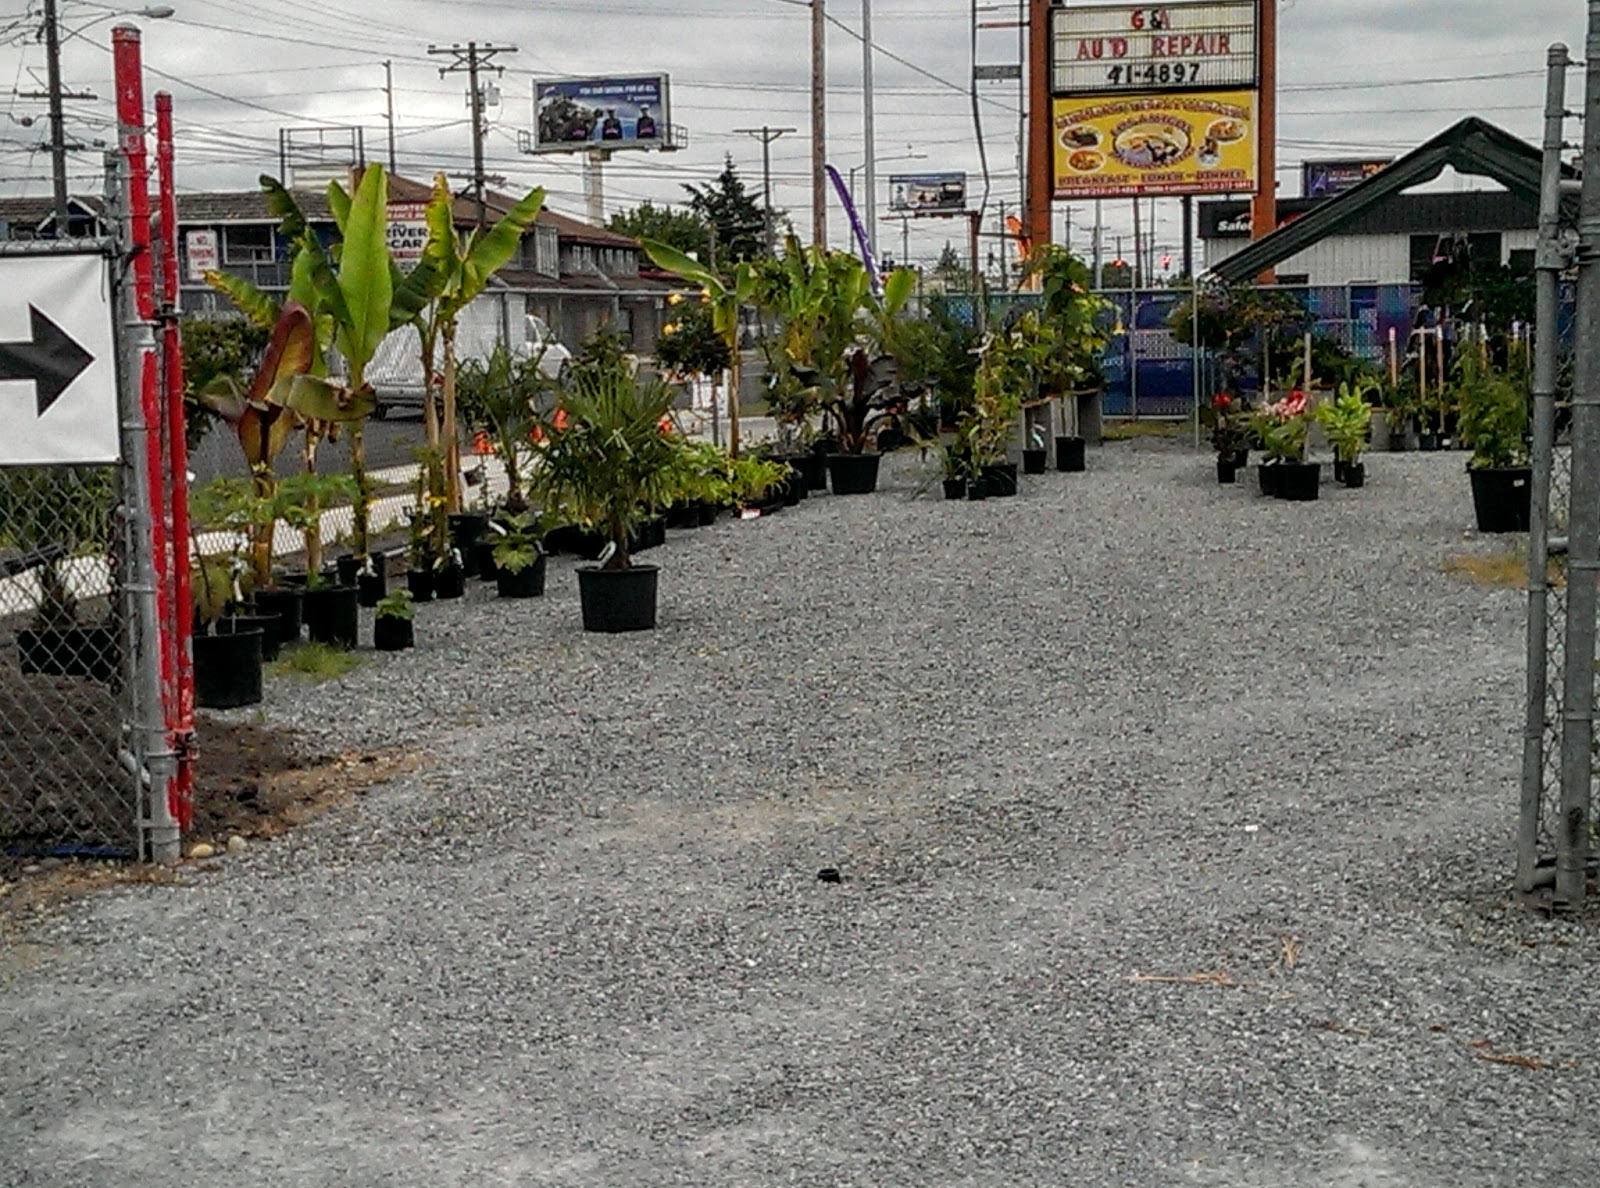 Turns Out, The Fenced Lot Goes With Green Thumb Garden Supply Which  Recently Moved Here From A Different Part Of Town. Iu0027d Shopped At The  Former Location, ...